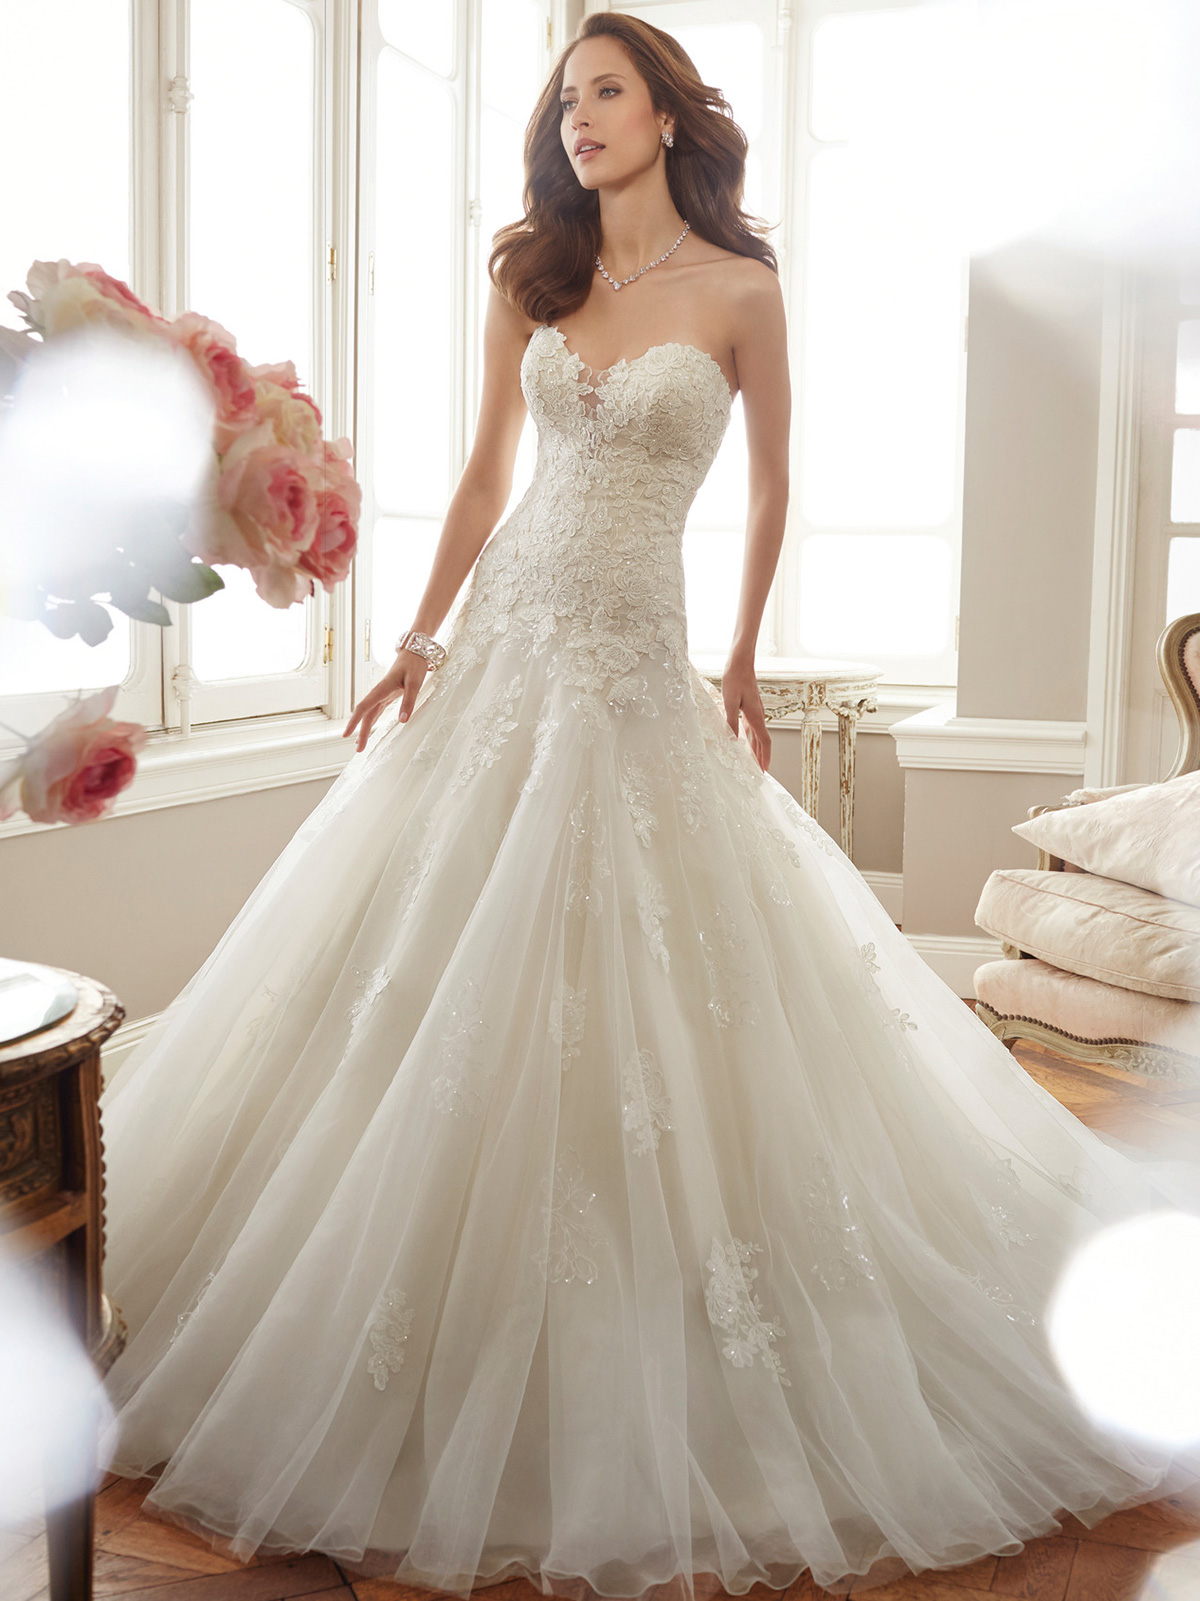 Sophia Tolli Y11715 Sweetheart Fit And Flare Deon Bridal Dress ...